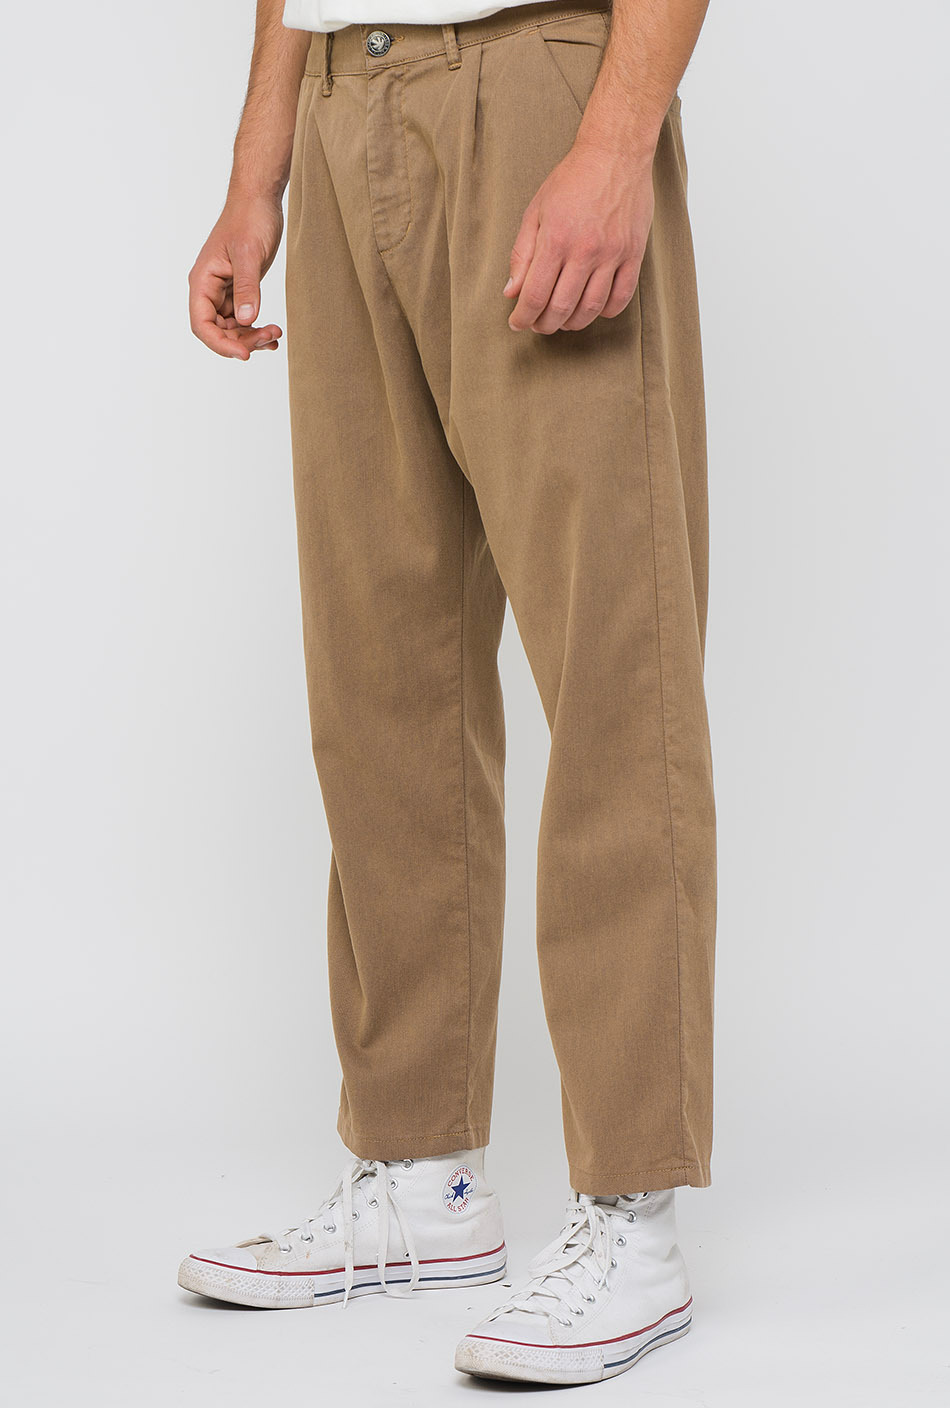 Swing Bob toasted trousers